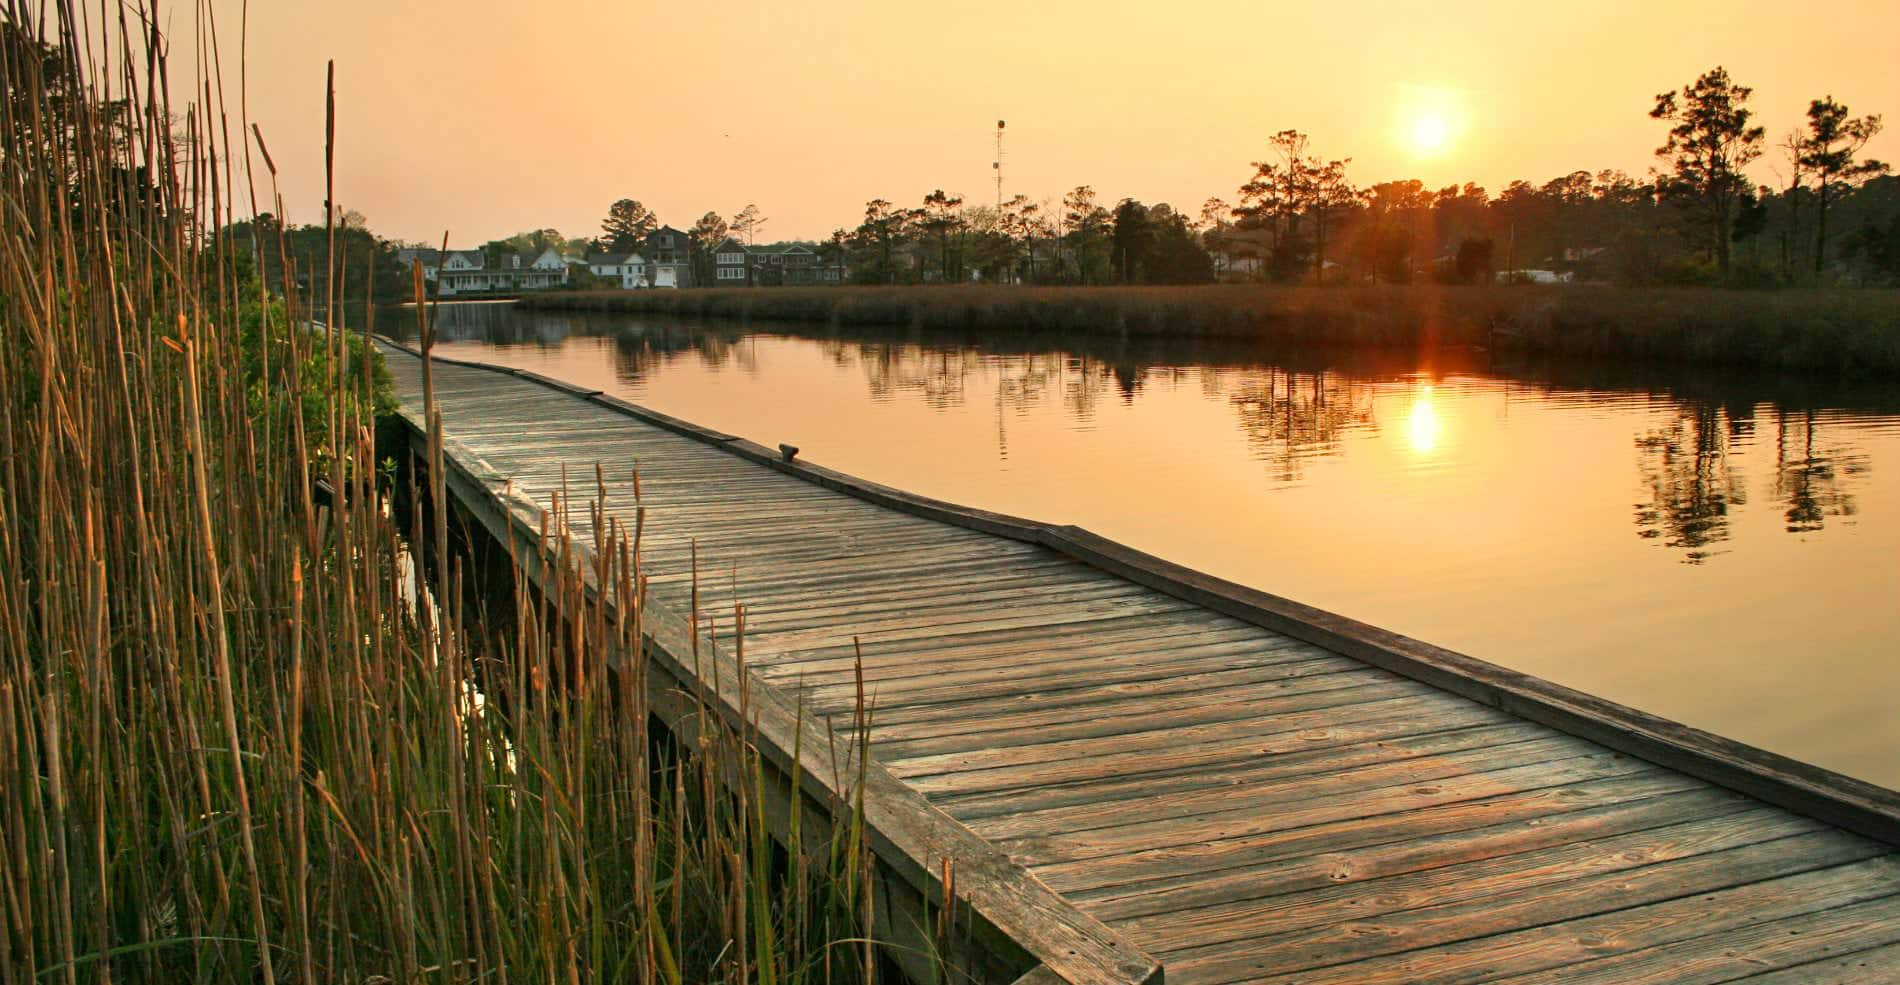 A beauitful and secluded view of the sunset from a wooden pier overlooking the water